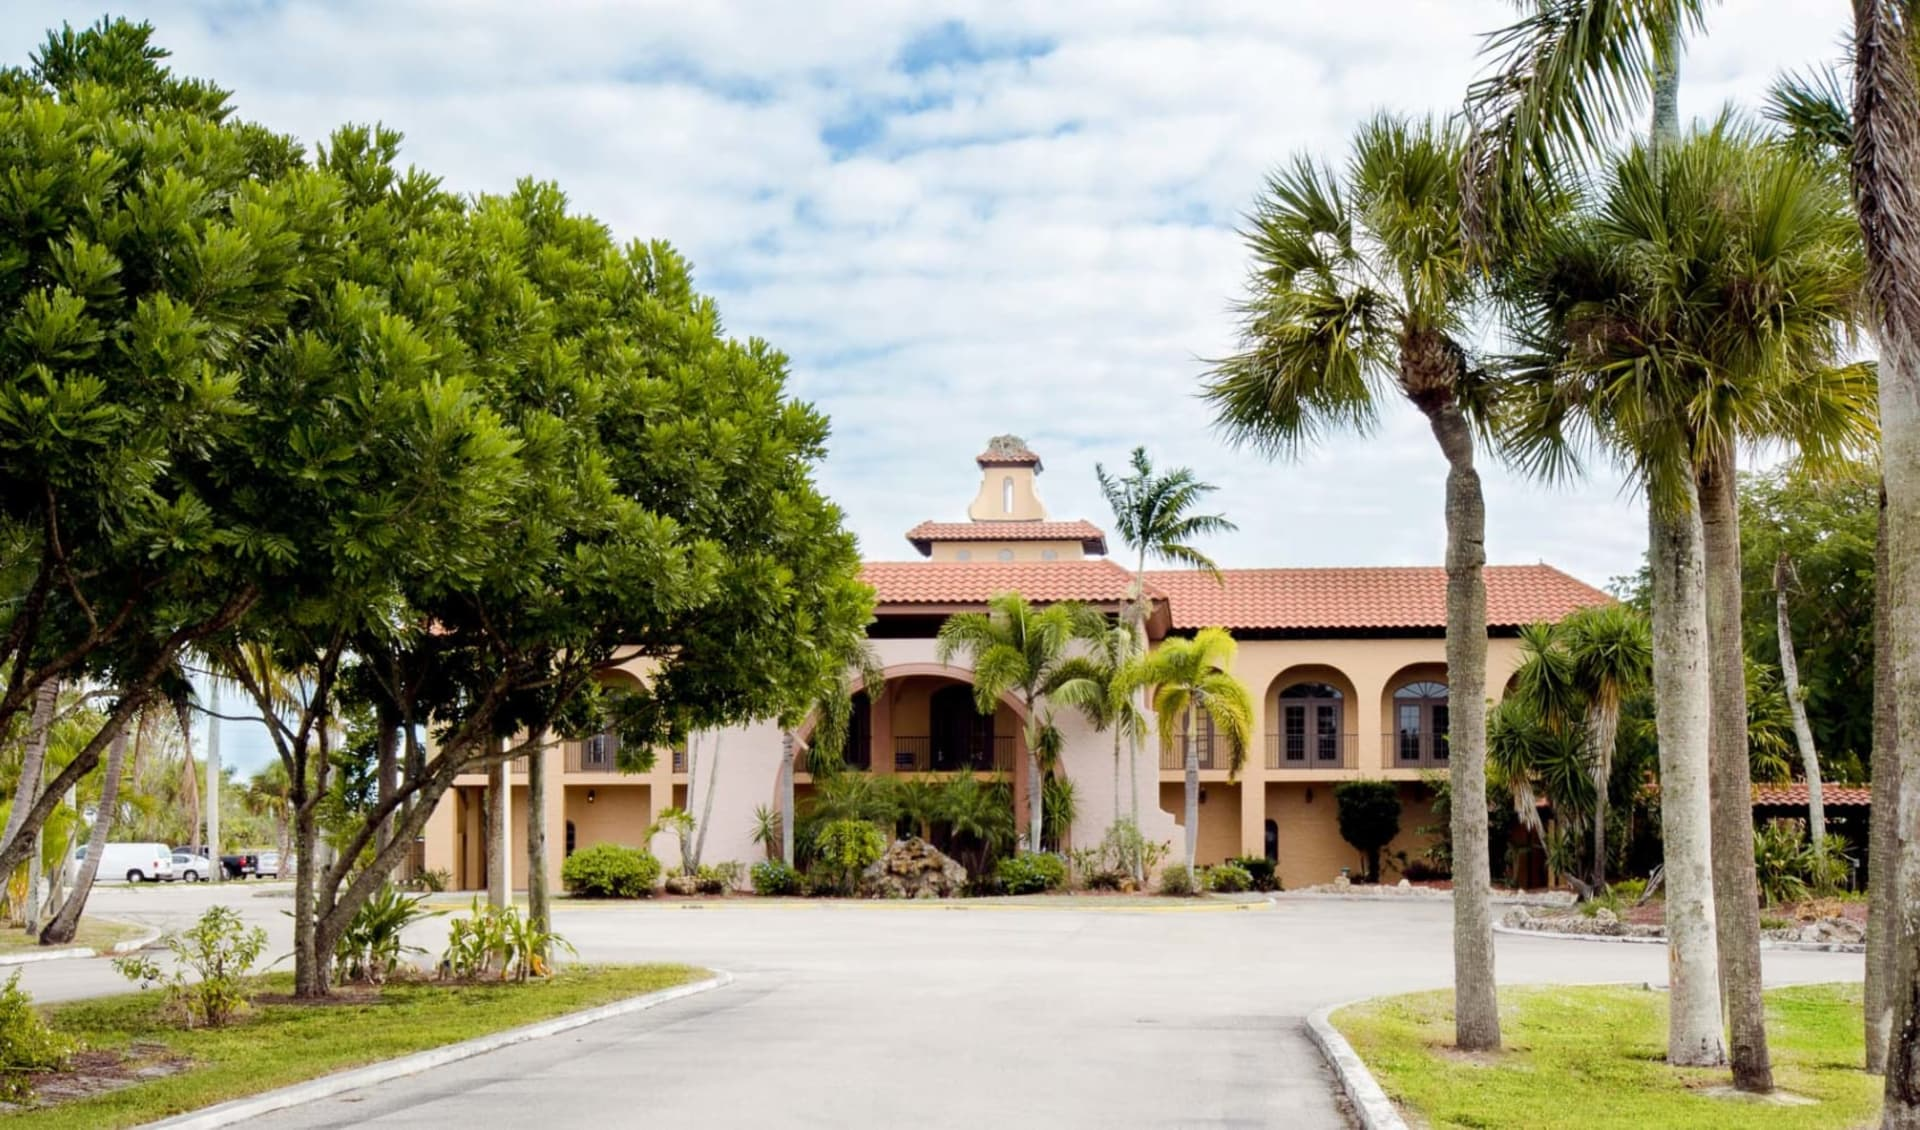 Port of The Islands Resort in Everglades:  Port of the Islands - Entrance